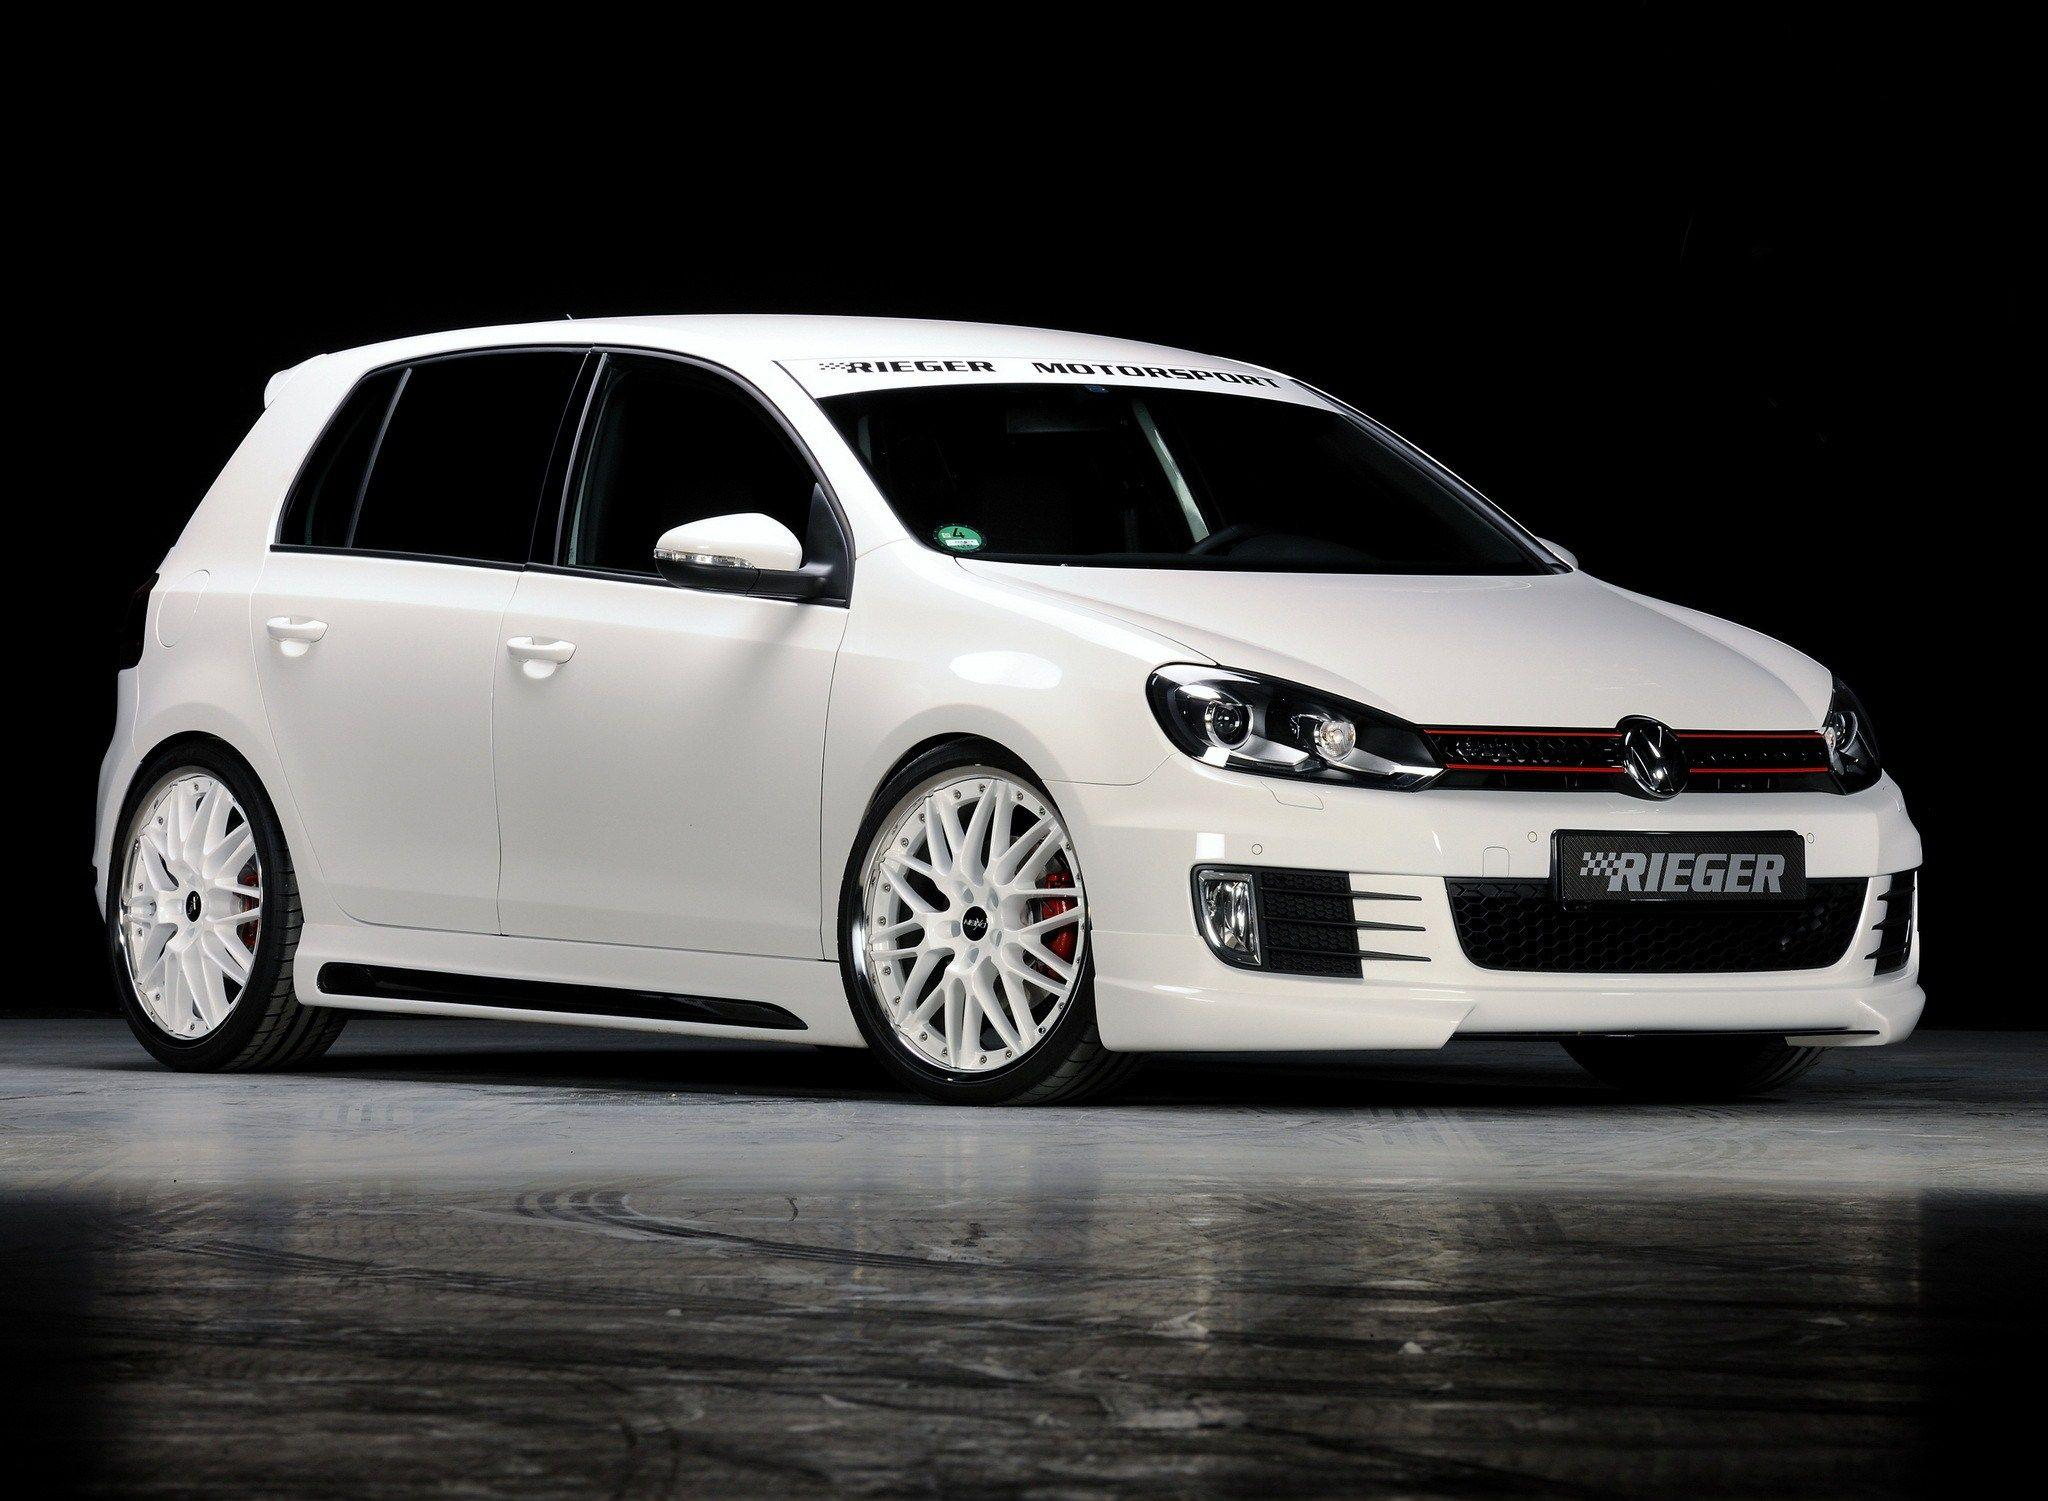 volkswagen golf gti wallpapers wallpaper cave. Black Bedroom Furniture Sets. Home Design Ideas